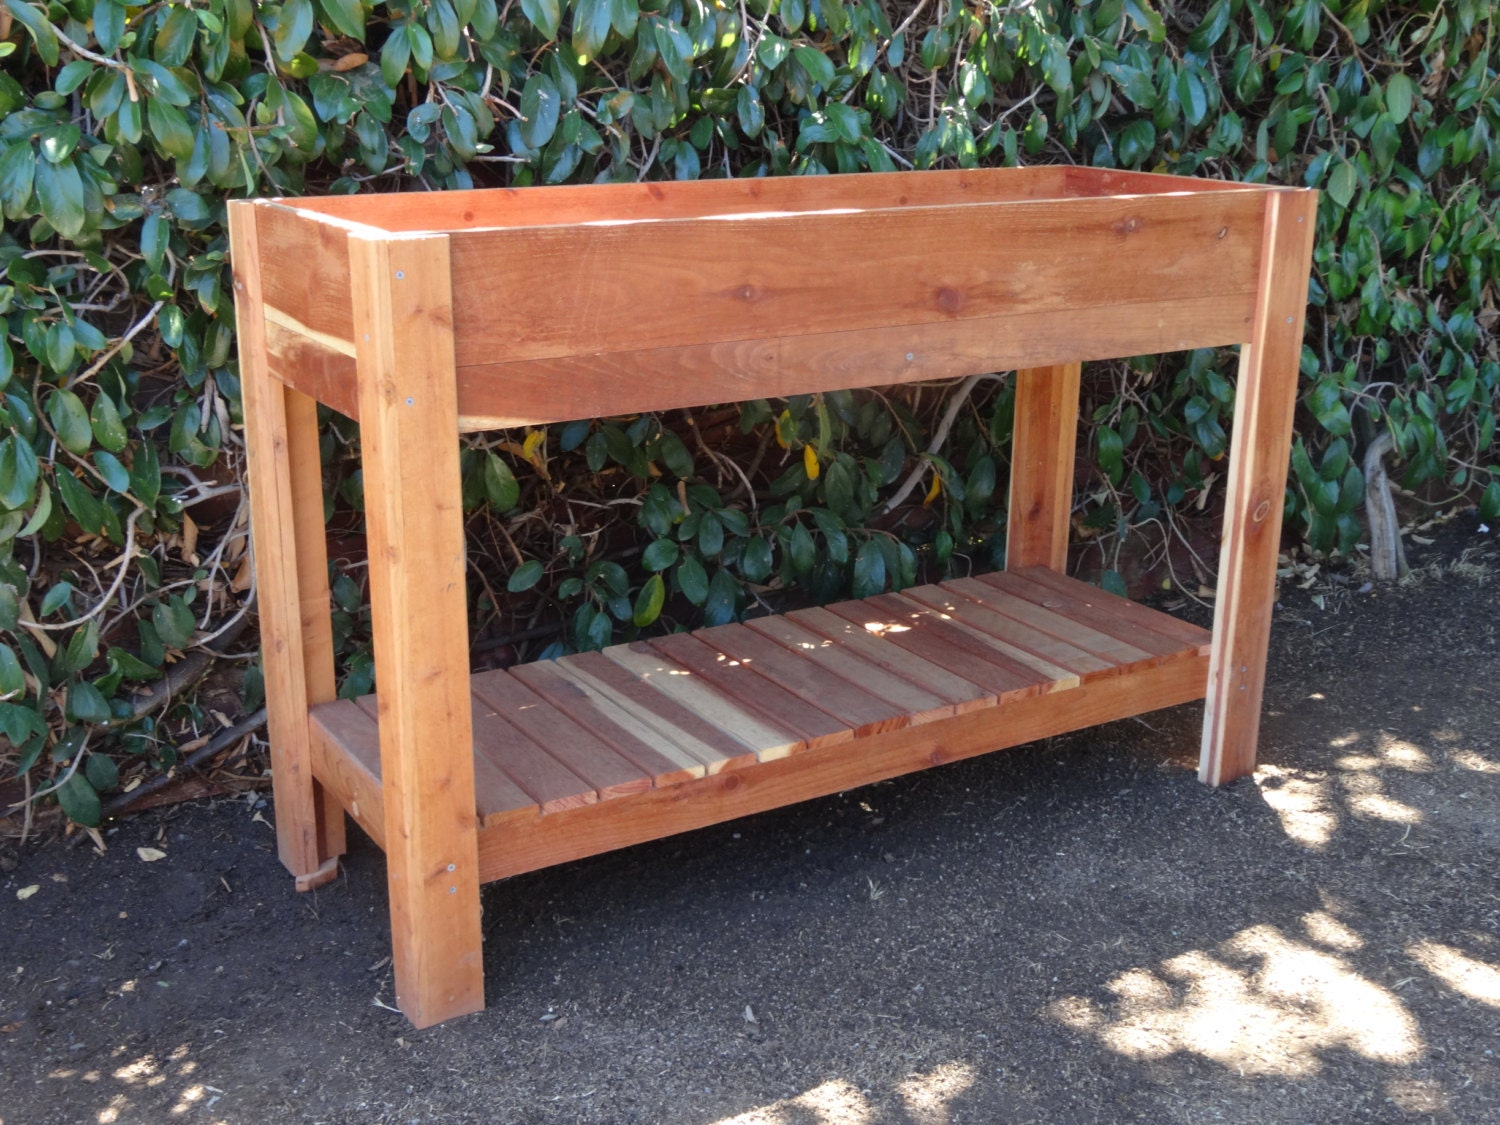 redwood elevated planter raised garden bed